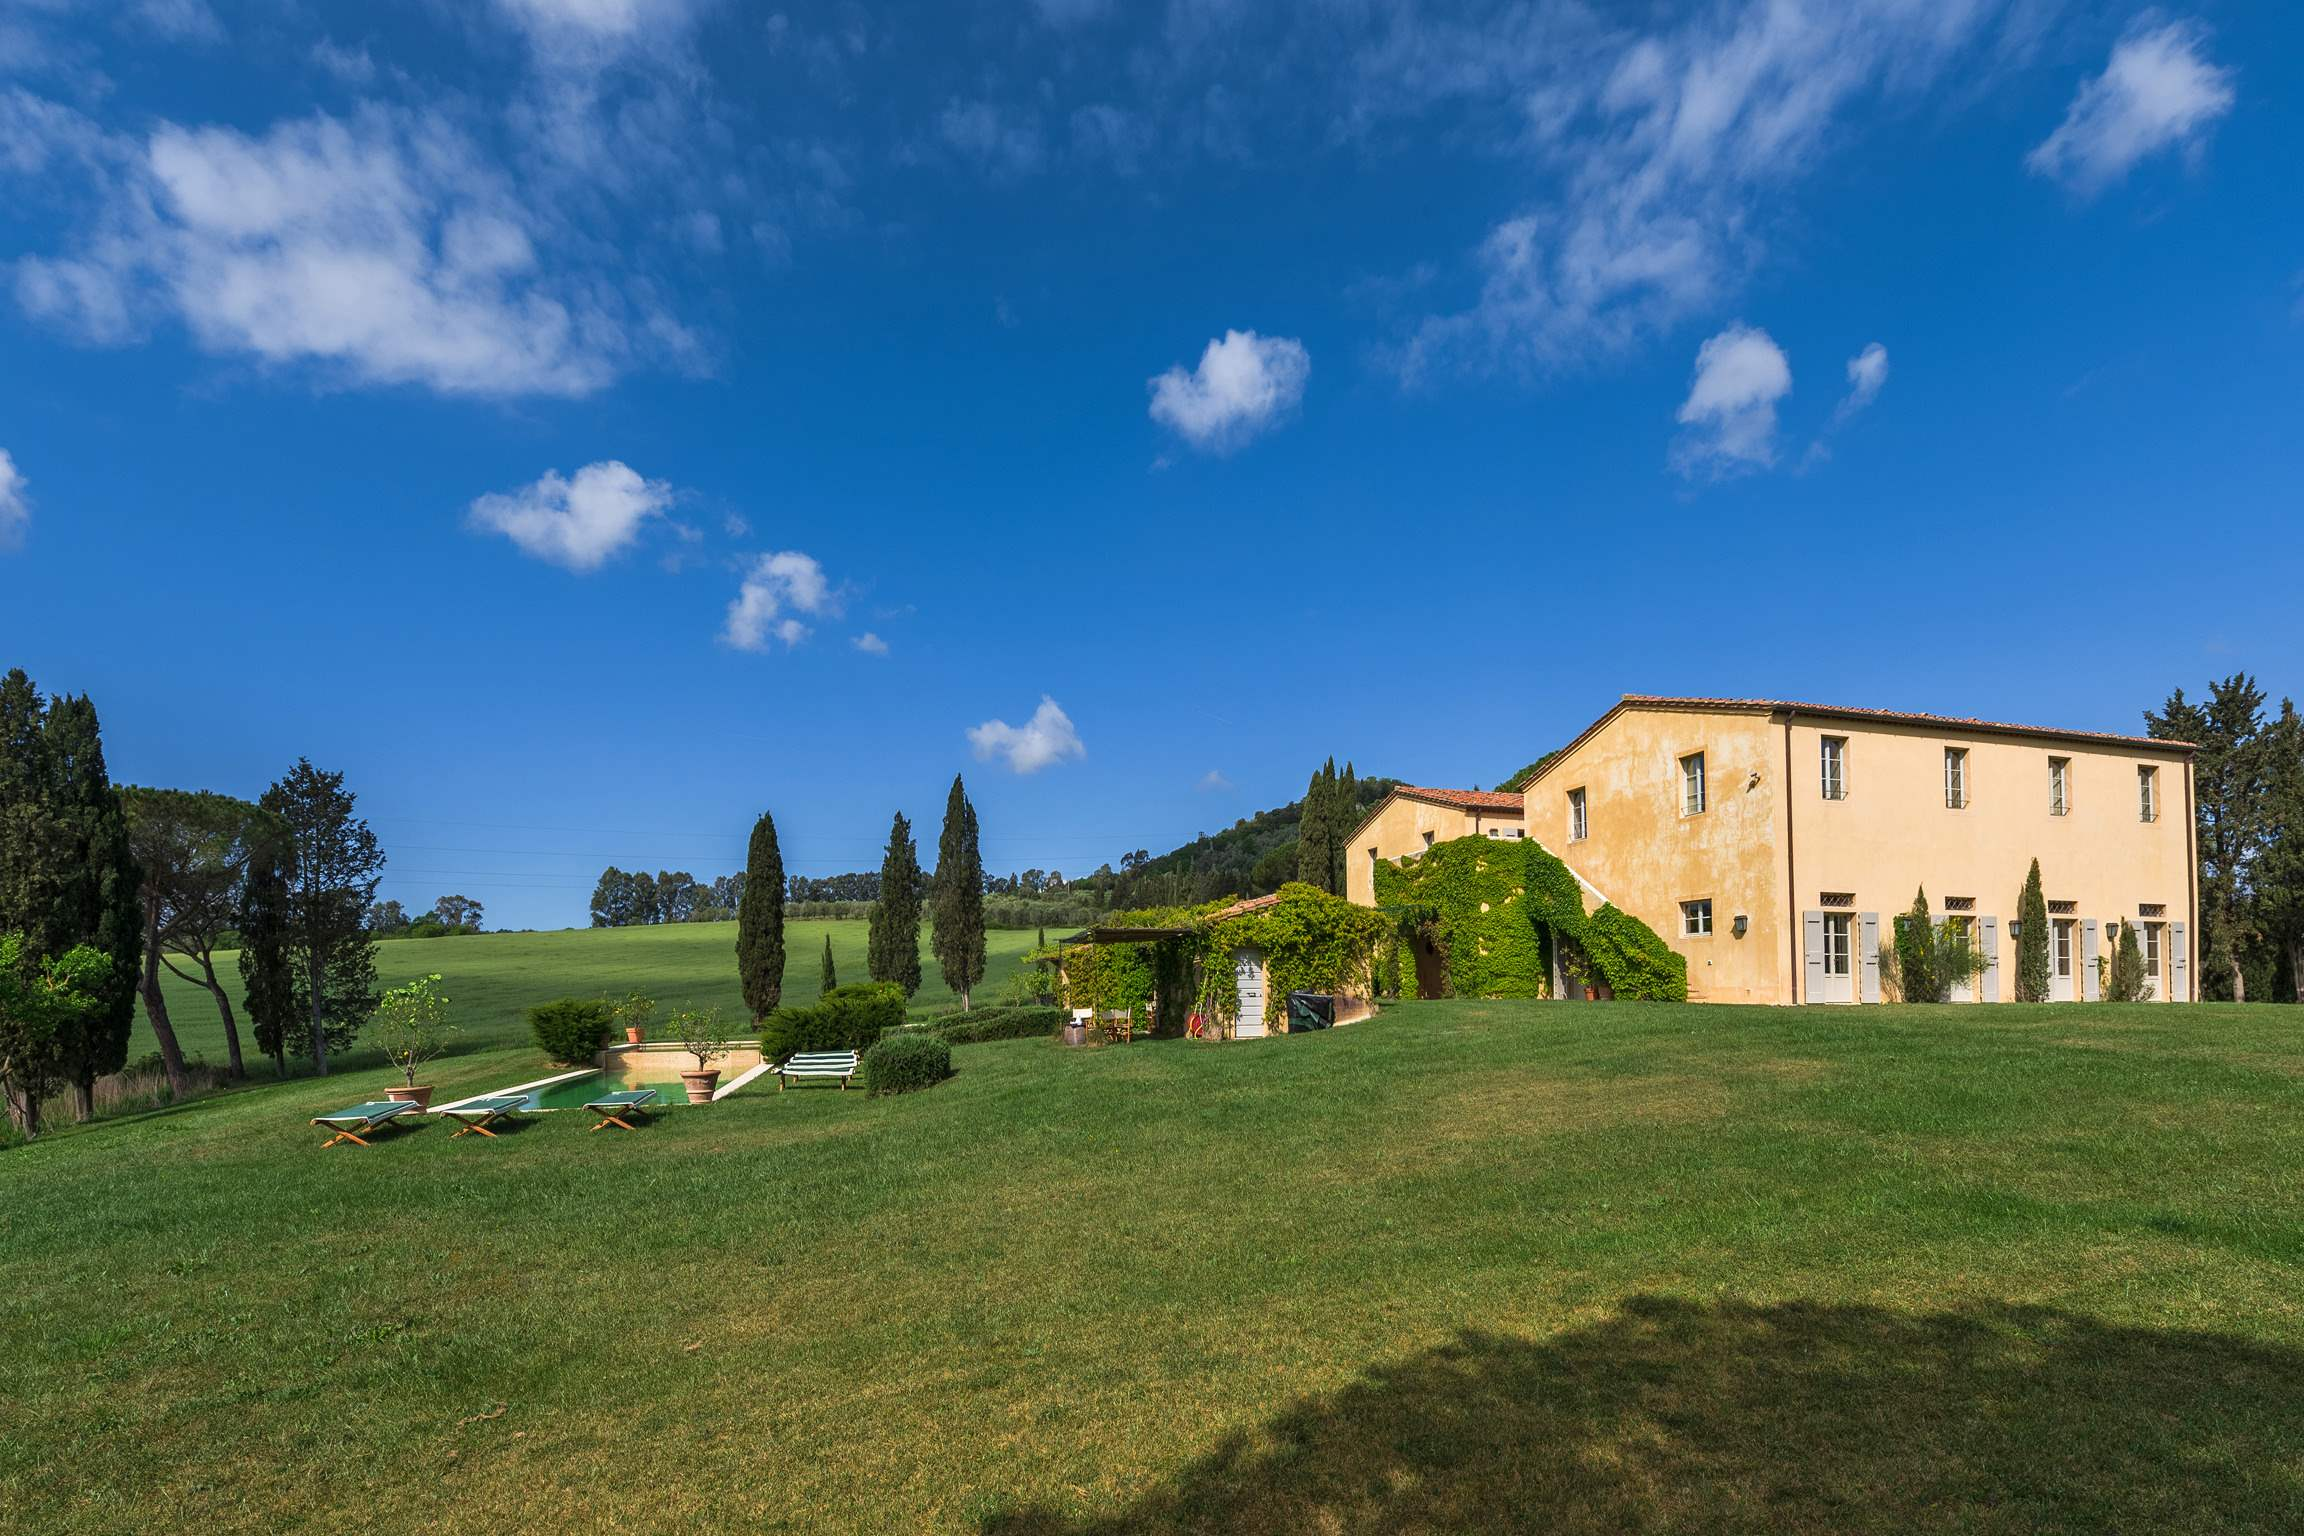 Villa Maremma 2, 9 bedroom villa in South Tuscany - Maremma, Tuscany Photo #2